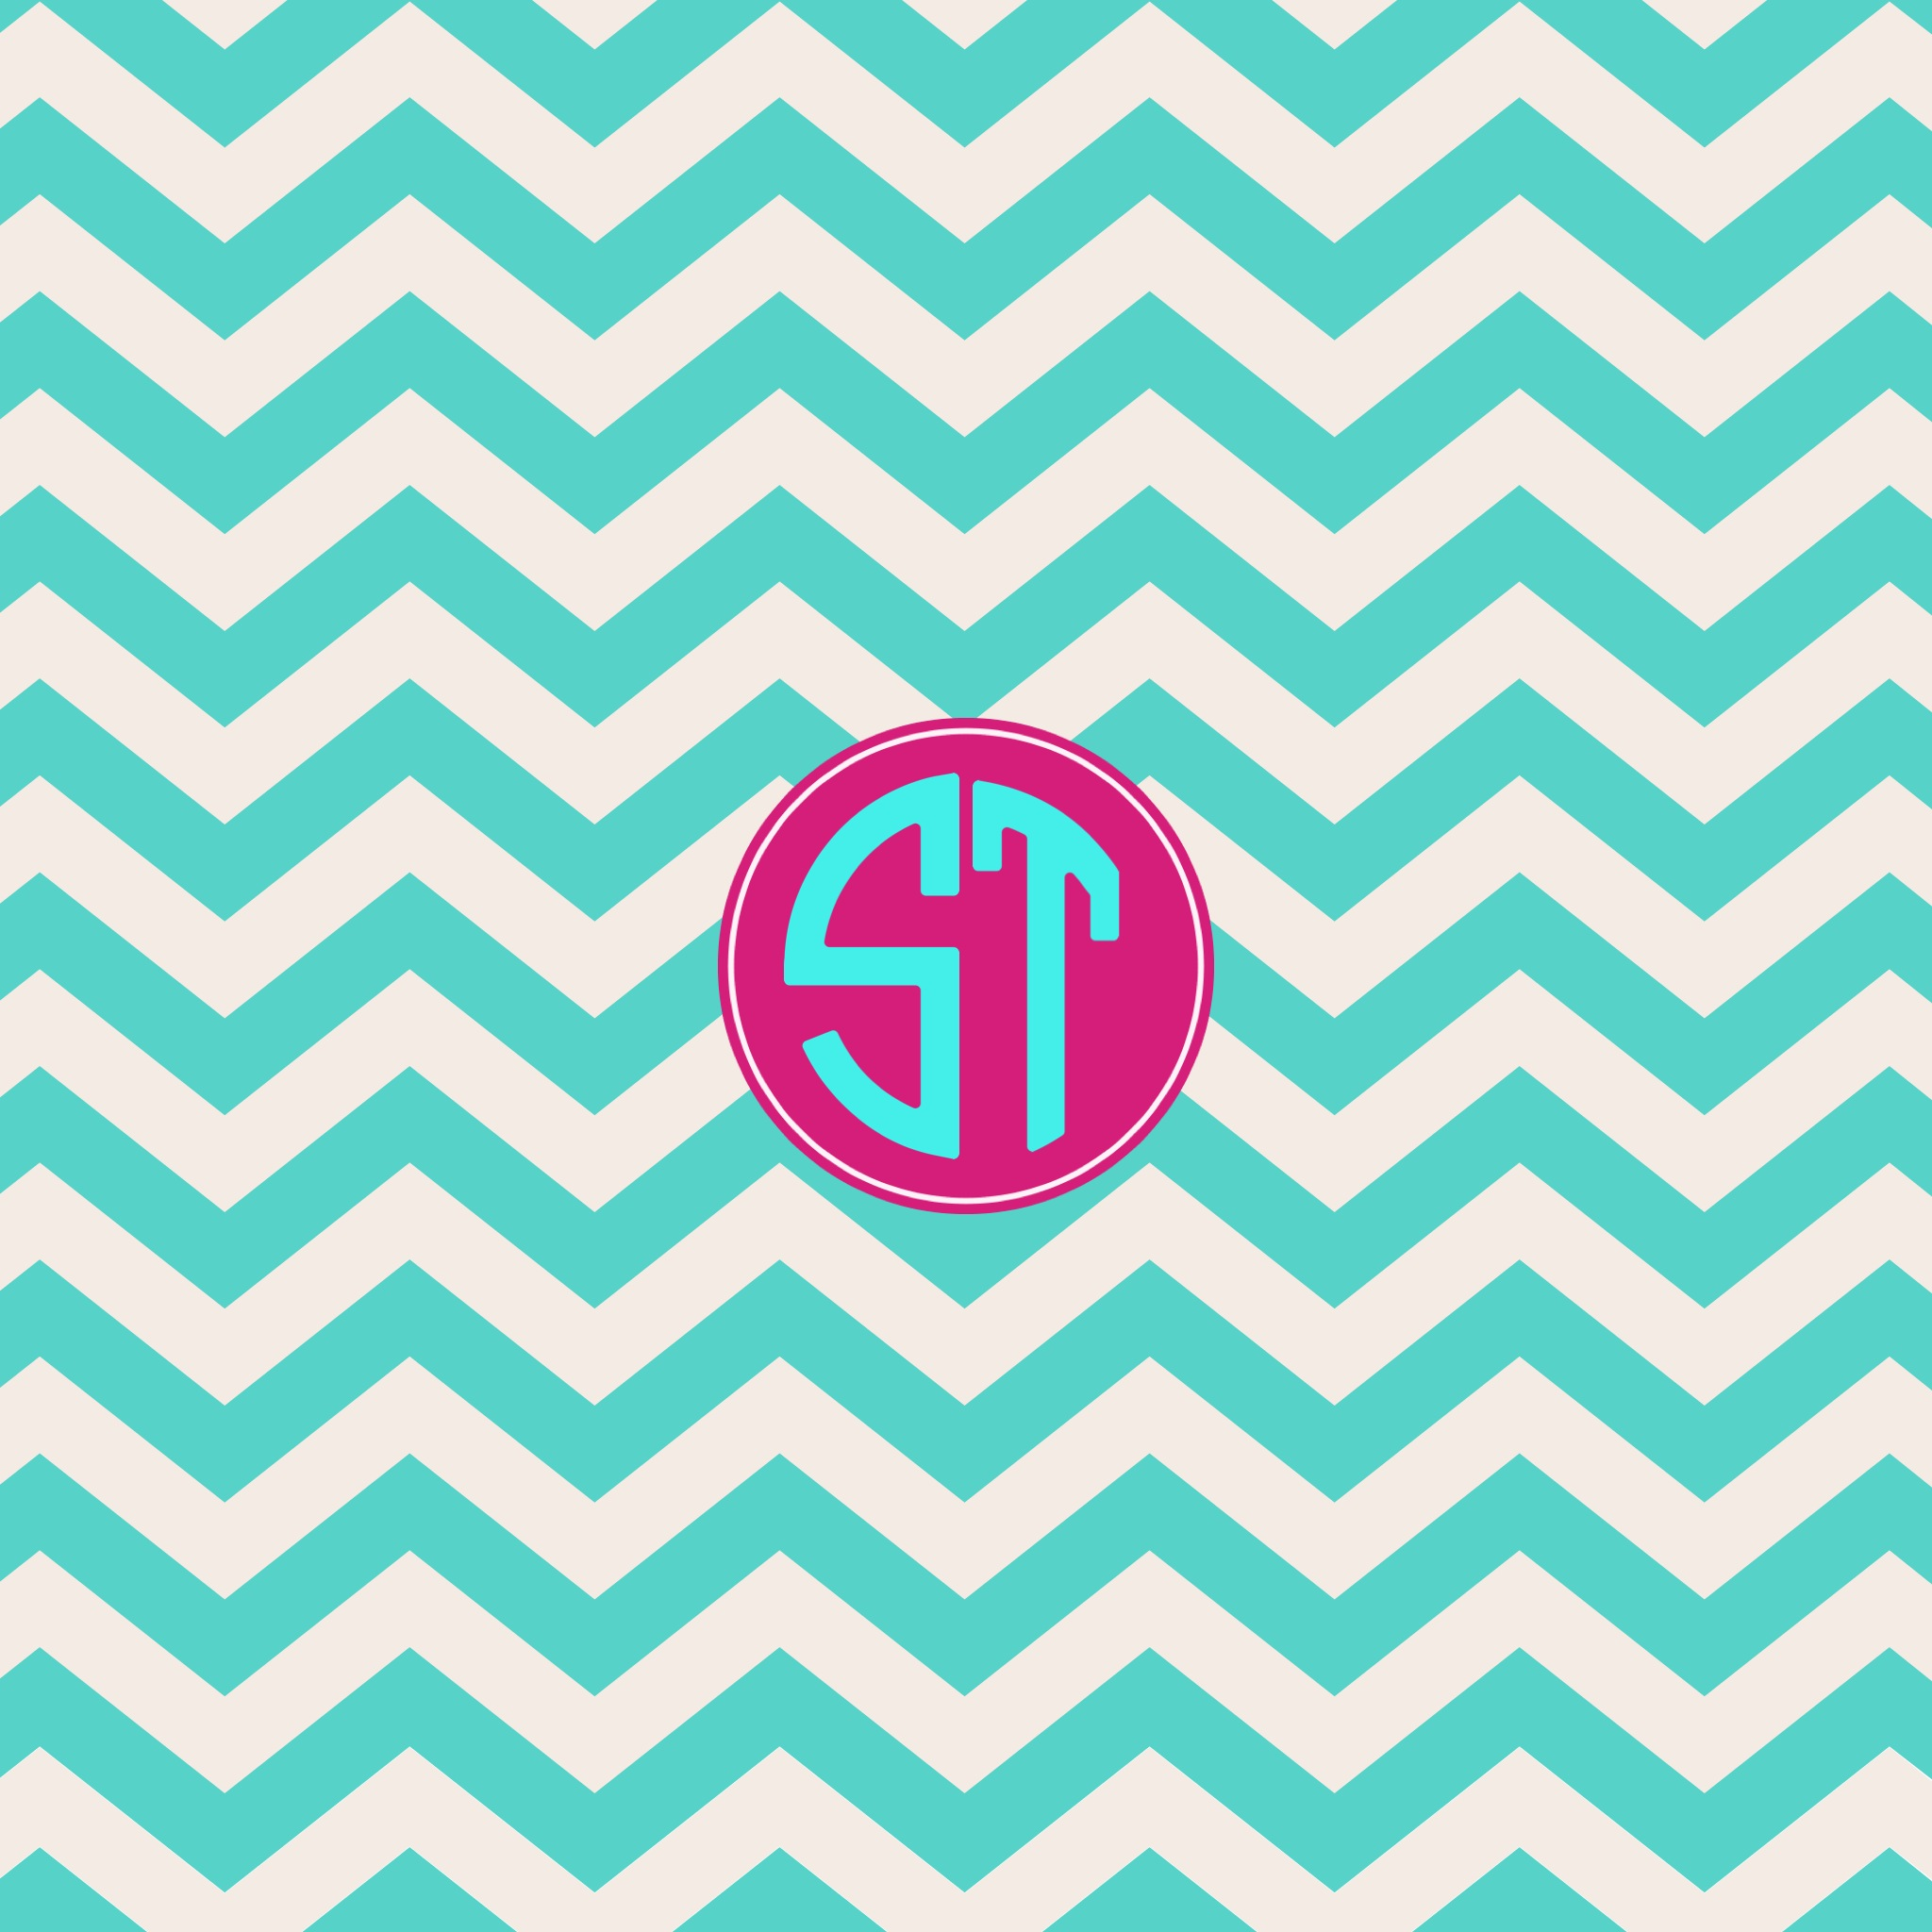 Stencil Monogram Wallpaper Backgrounds Fashion Skins Themes 2048x2048